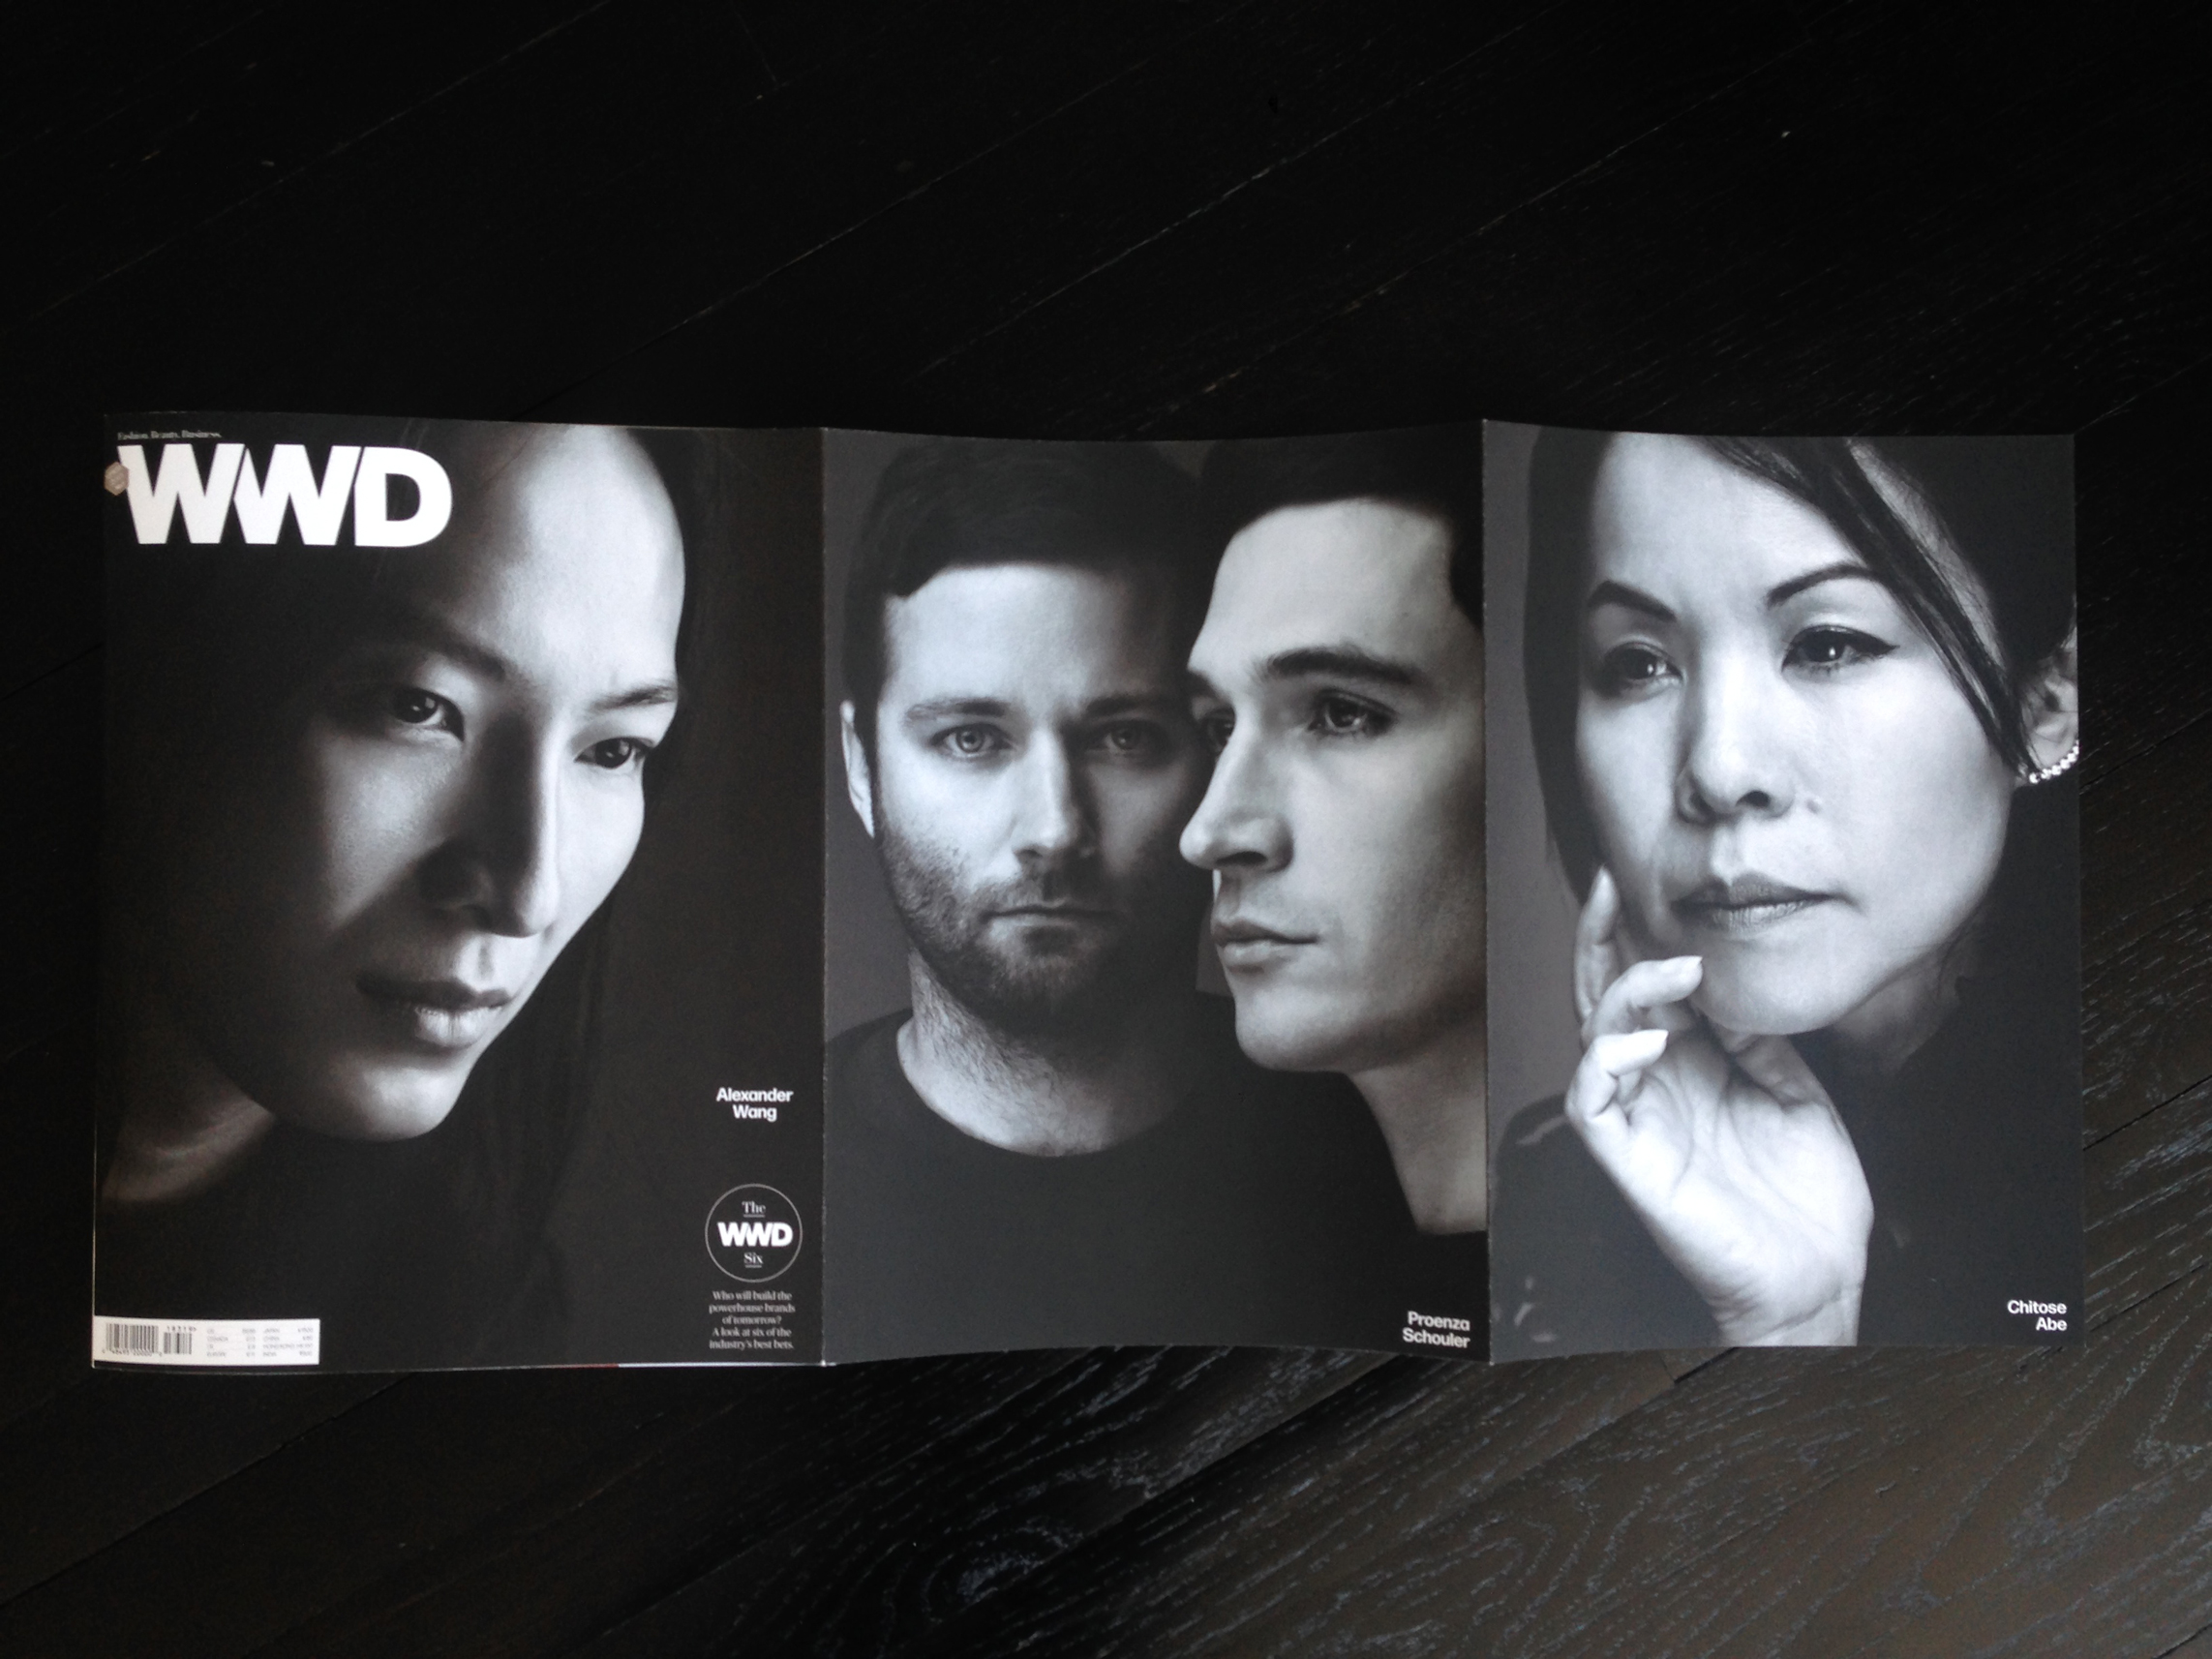 Triple gatefold A, featuring Wang, Proenza Schouler and Chitose Abe. Photography by Nigel Parry. The covers were photographed in 6 days andshippedto the printerless than 48 hours after the final shoot was complete, which meant making selects immediately after eachsession and hoping they'd all fit together nicely in a triptych at the end (I also did not know who'd be on the cover other than Wang).